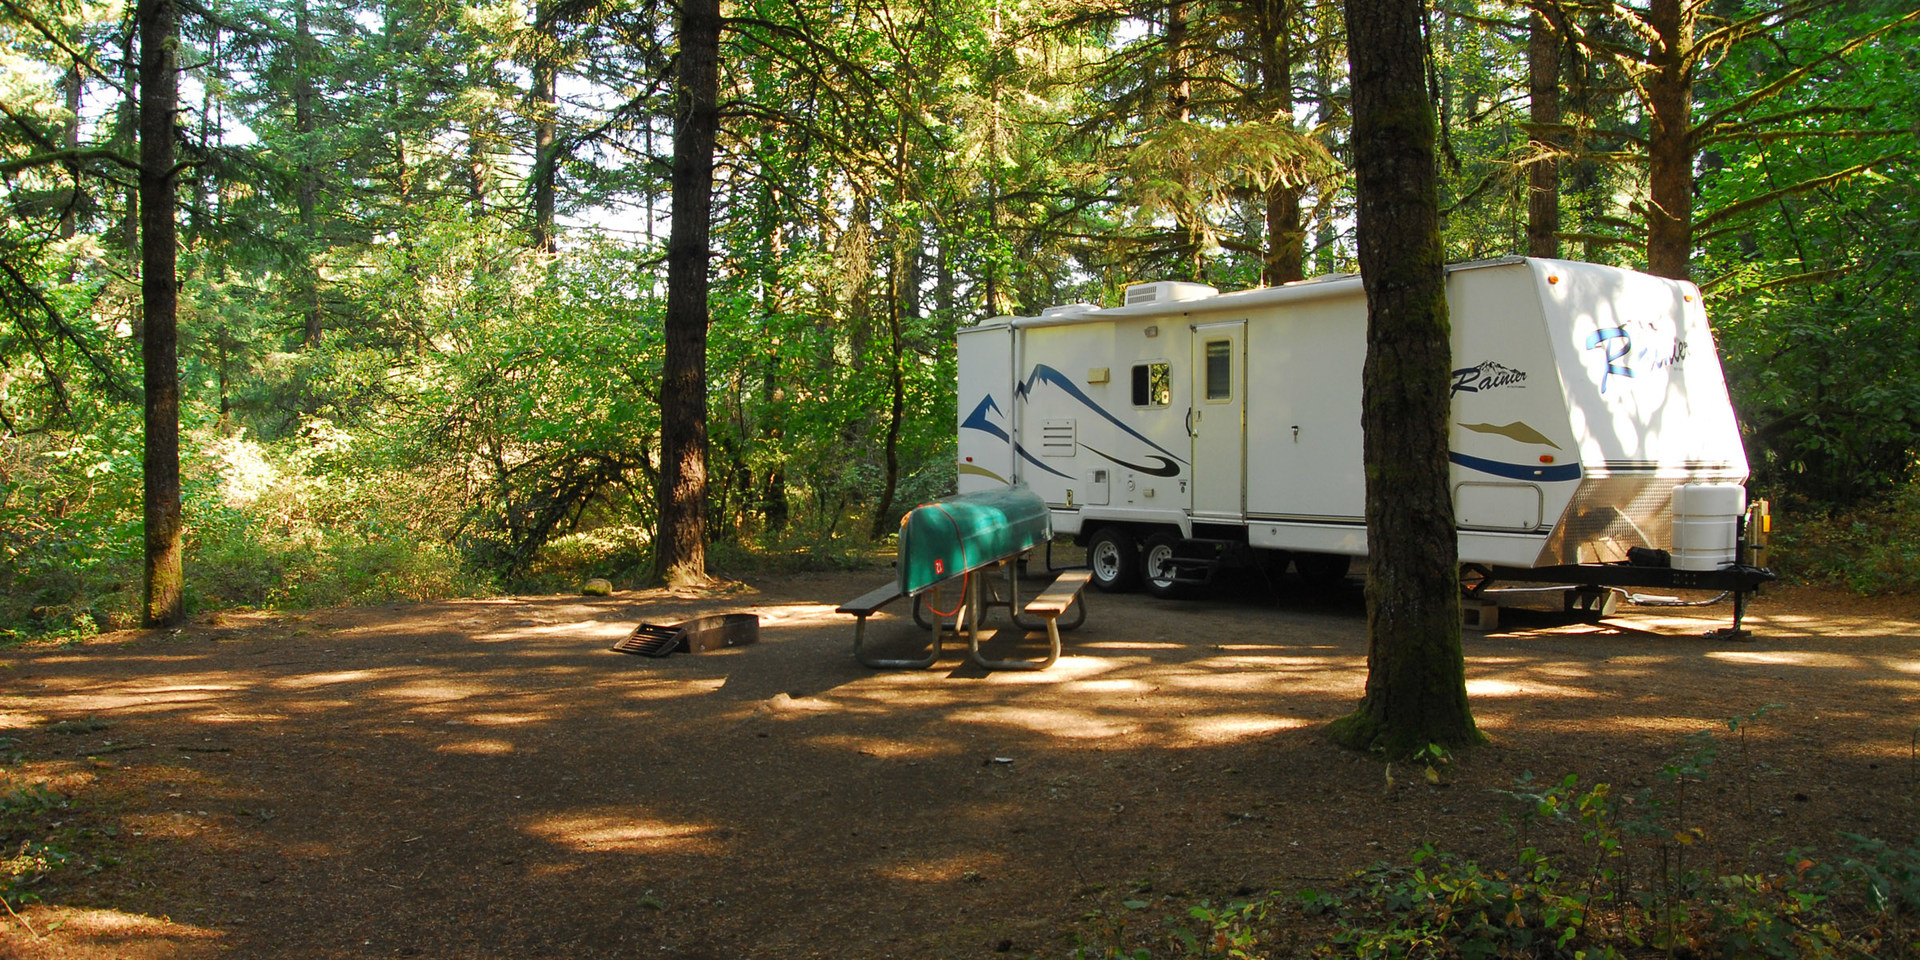 Milo mciver state park campground outdoor project for Camping grounds with cabins